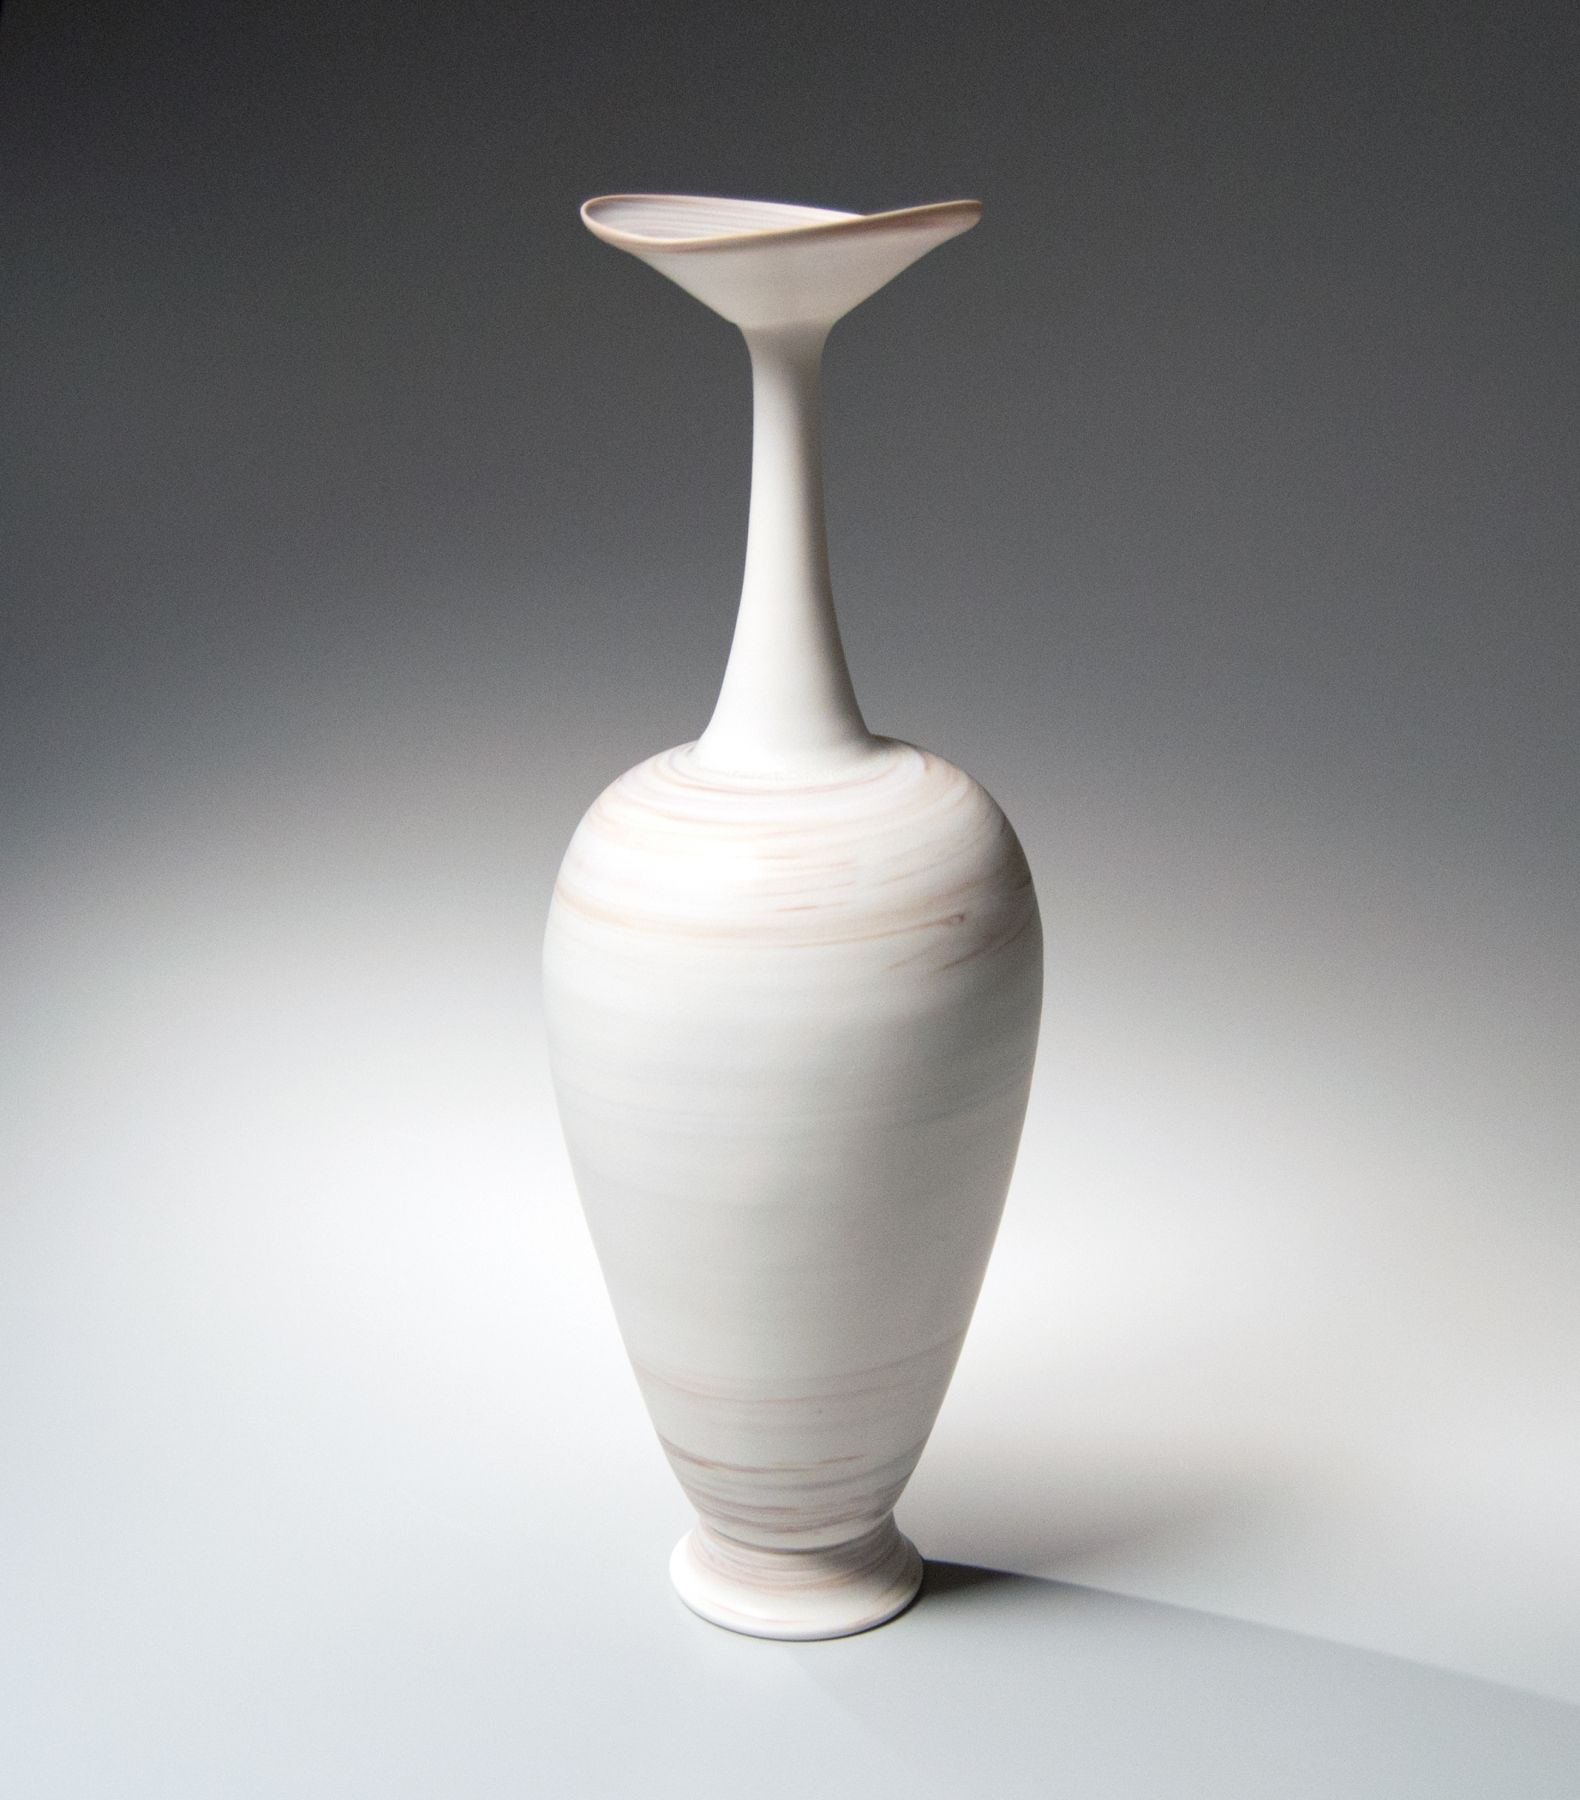 Ito Hidehito, neriage amphora-shpaed bottle, marbleized clay, 2015, marbleized porcelain, Japanese ceramics, Japanese pottery, Japanese bottle, Japanese neriage, Japanese contemporary ceramics, Japanese porcelain